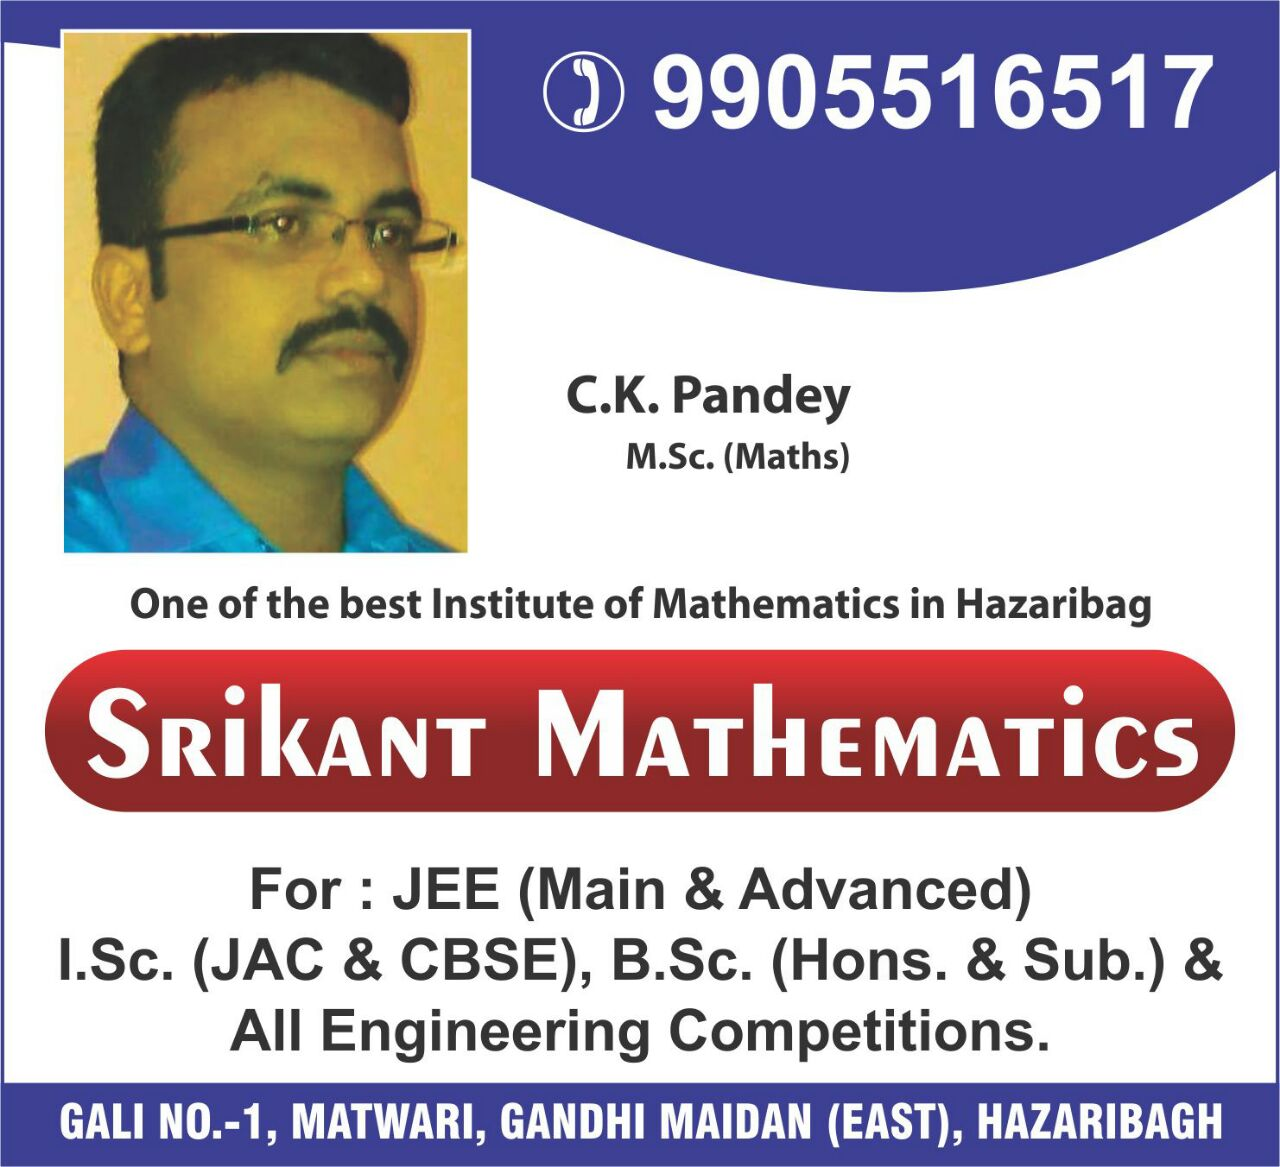 SRIKANT MATHEMATICS IN HAZARIBAGH